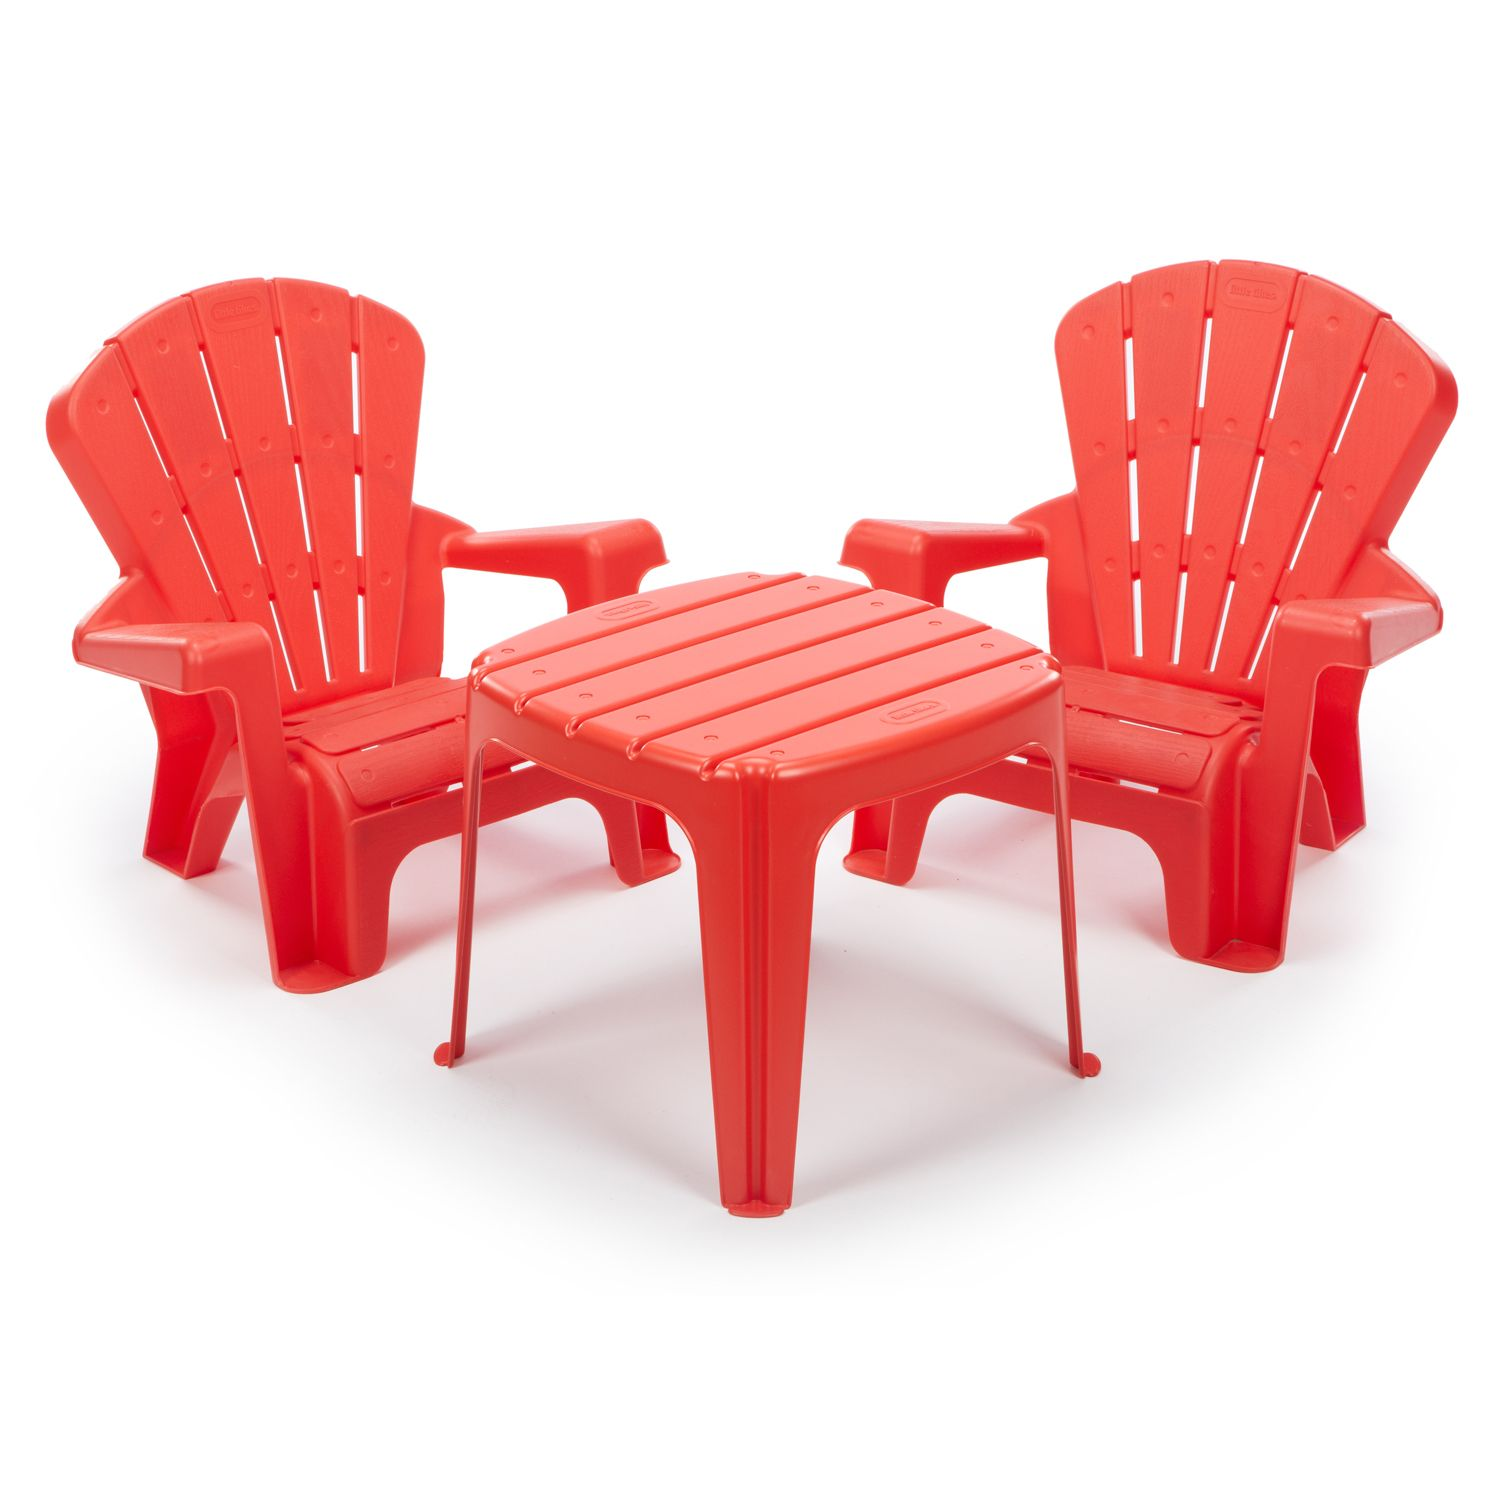 sc 1 st  Kohlu0027s : garden table and chairs set - pezcame.com